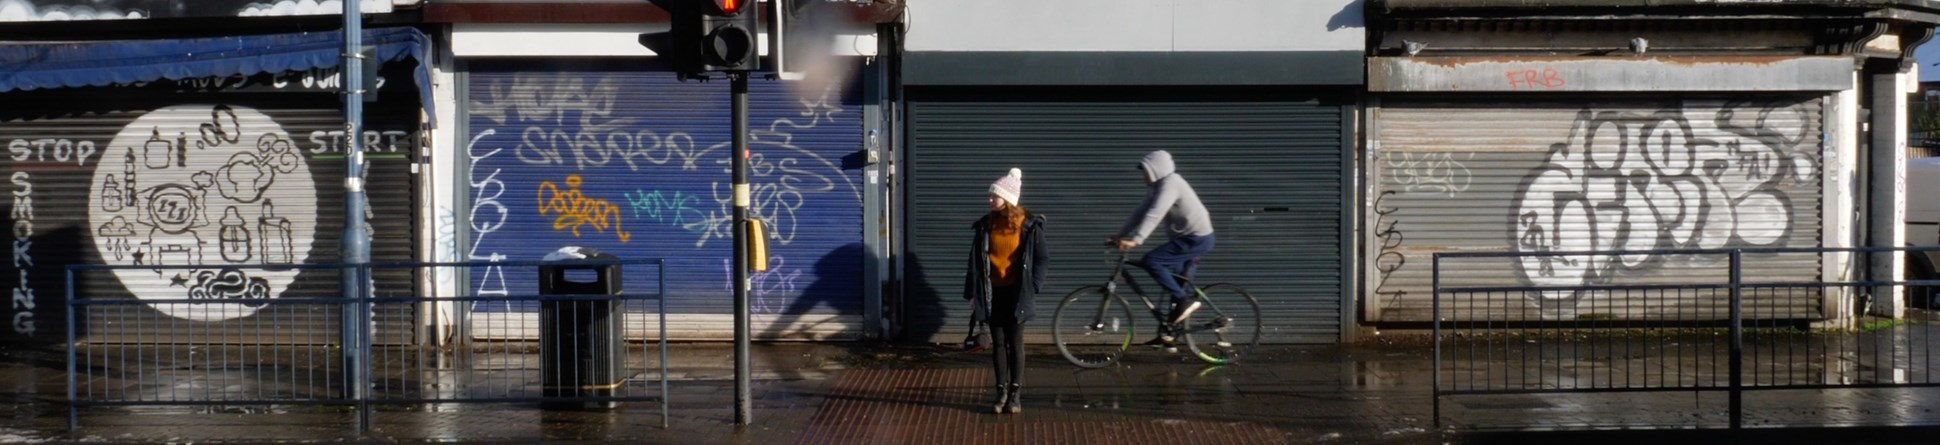 Woman stands waiting at a pelican crossing as a cyclist passes behind her on the pavement. Behind her along the street, shops are closed and most of the shop front security shutters have graffiti.